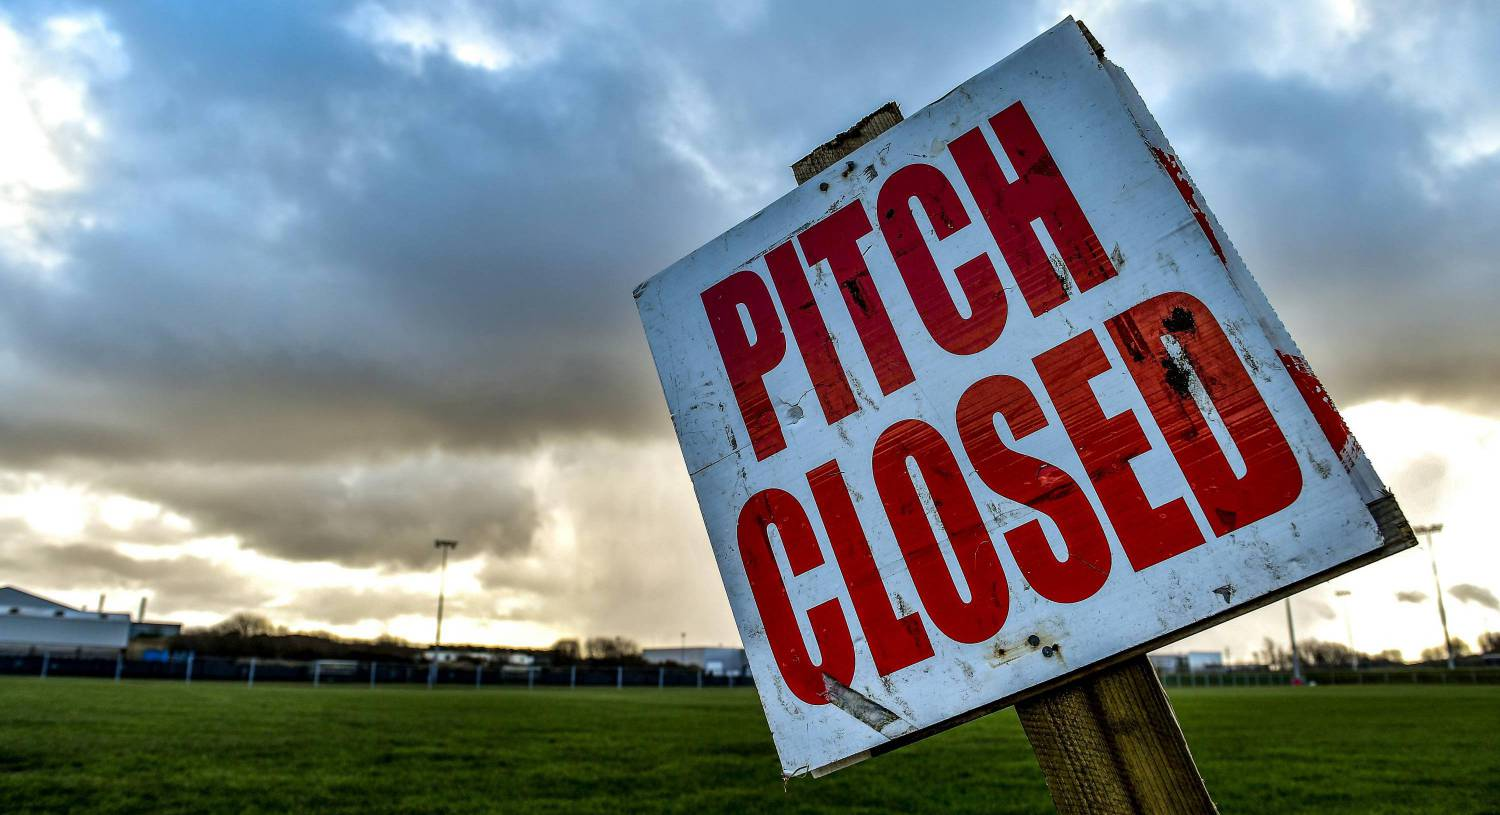 Pitch closures deepen the urban-rural divide